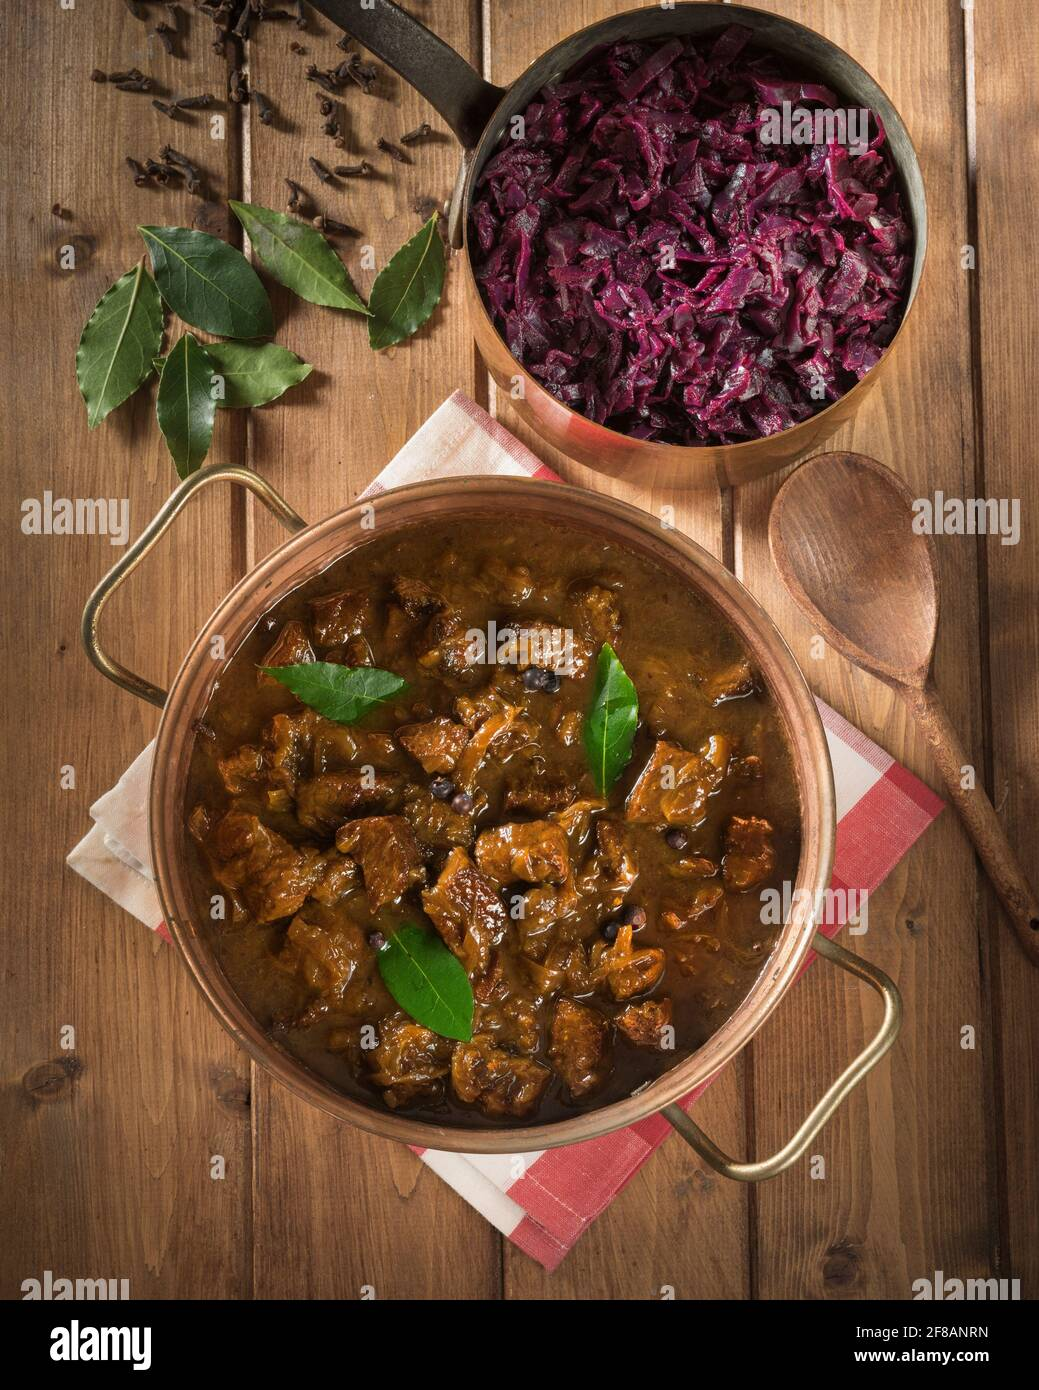 Hachee. Dutch beef and onion stew with red cabbage. Netherlands Food Stock Photo